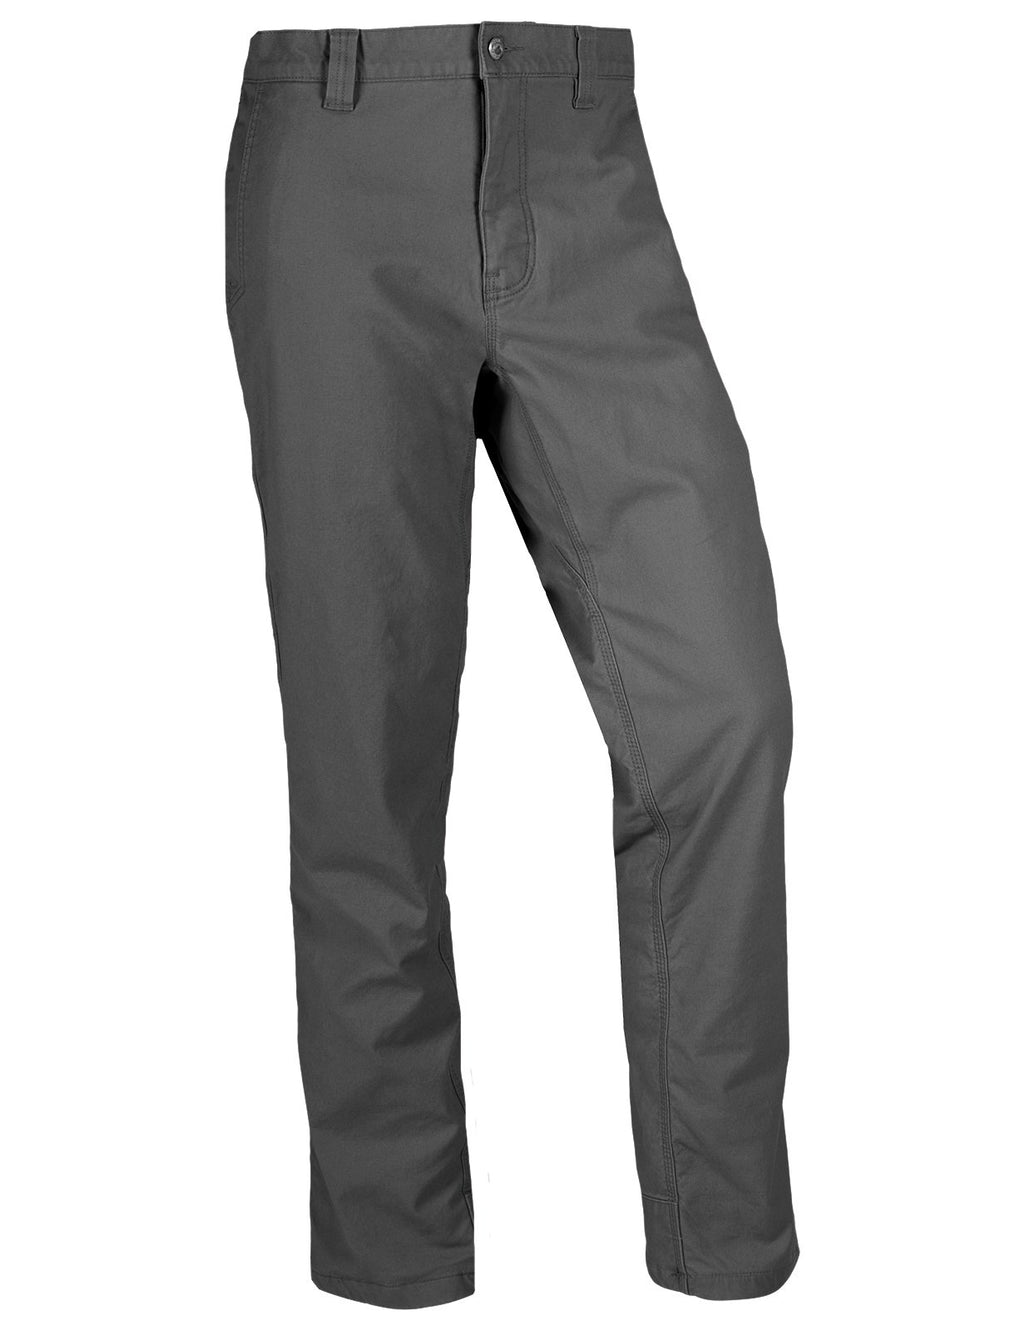 Lined Mountain Pant